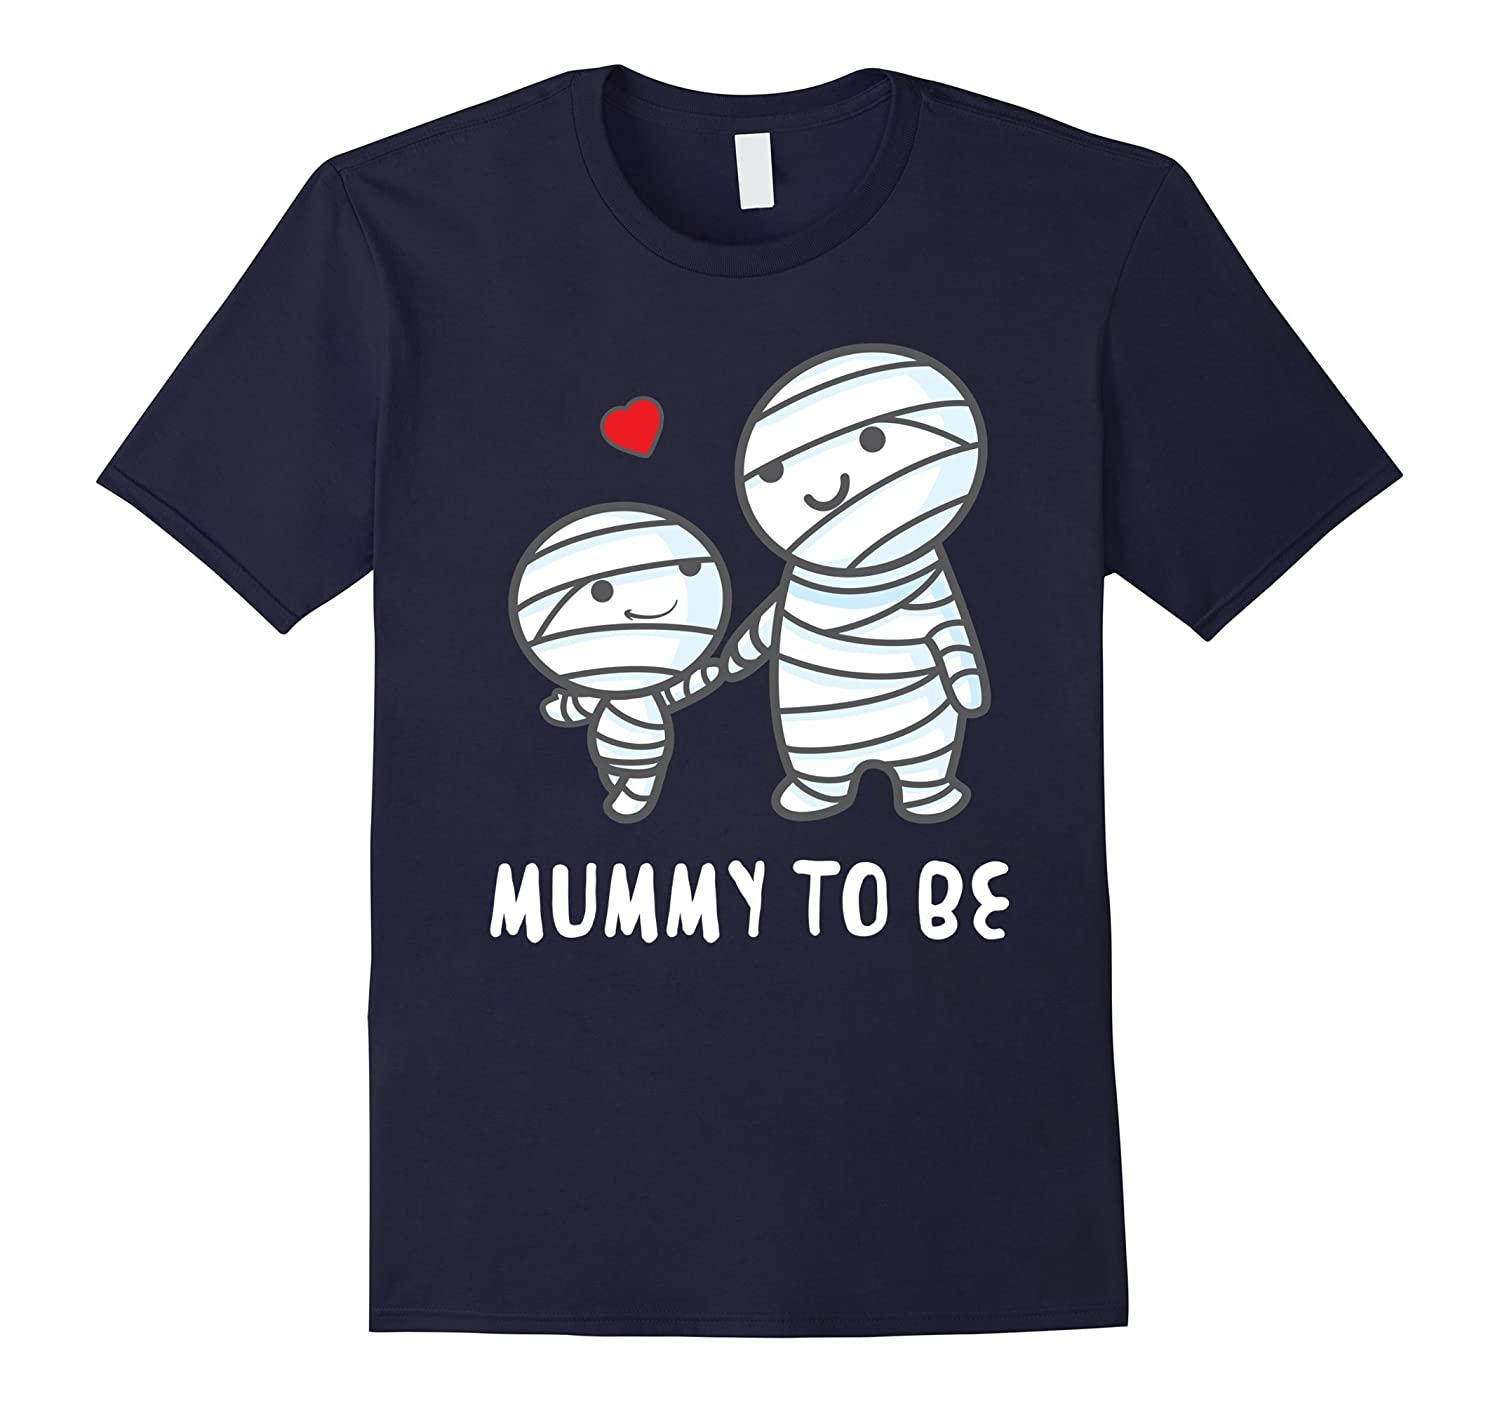 'Mummy To Be' Funny Halloween Maternity Shirt-ANZ